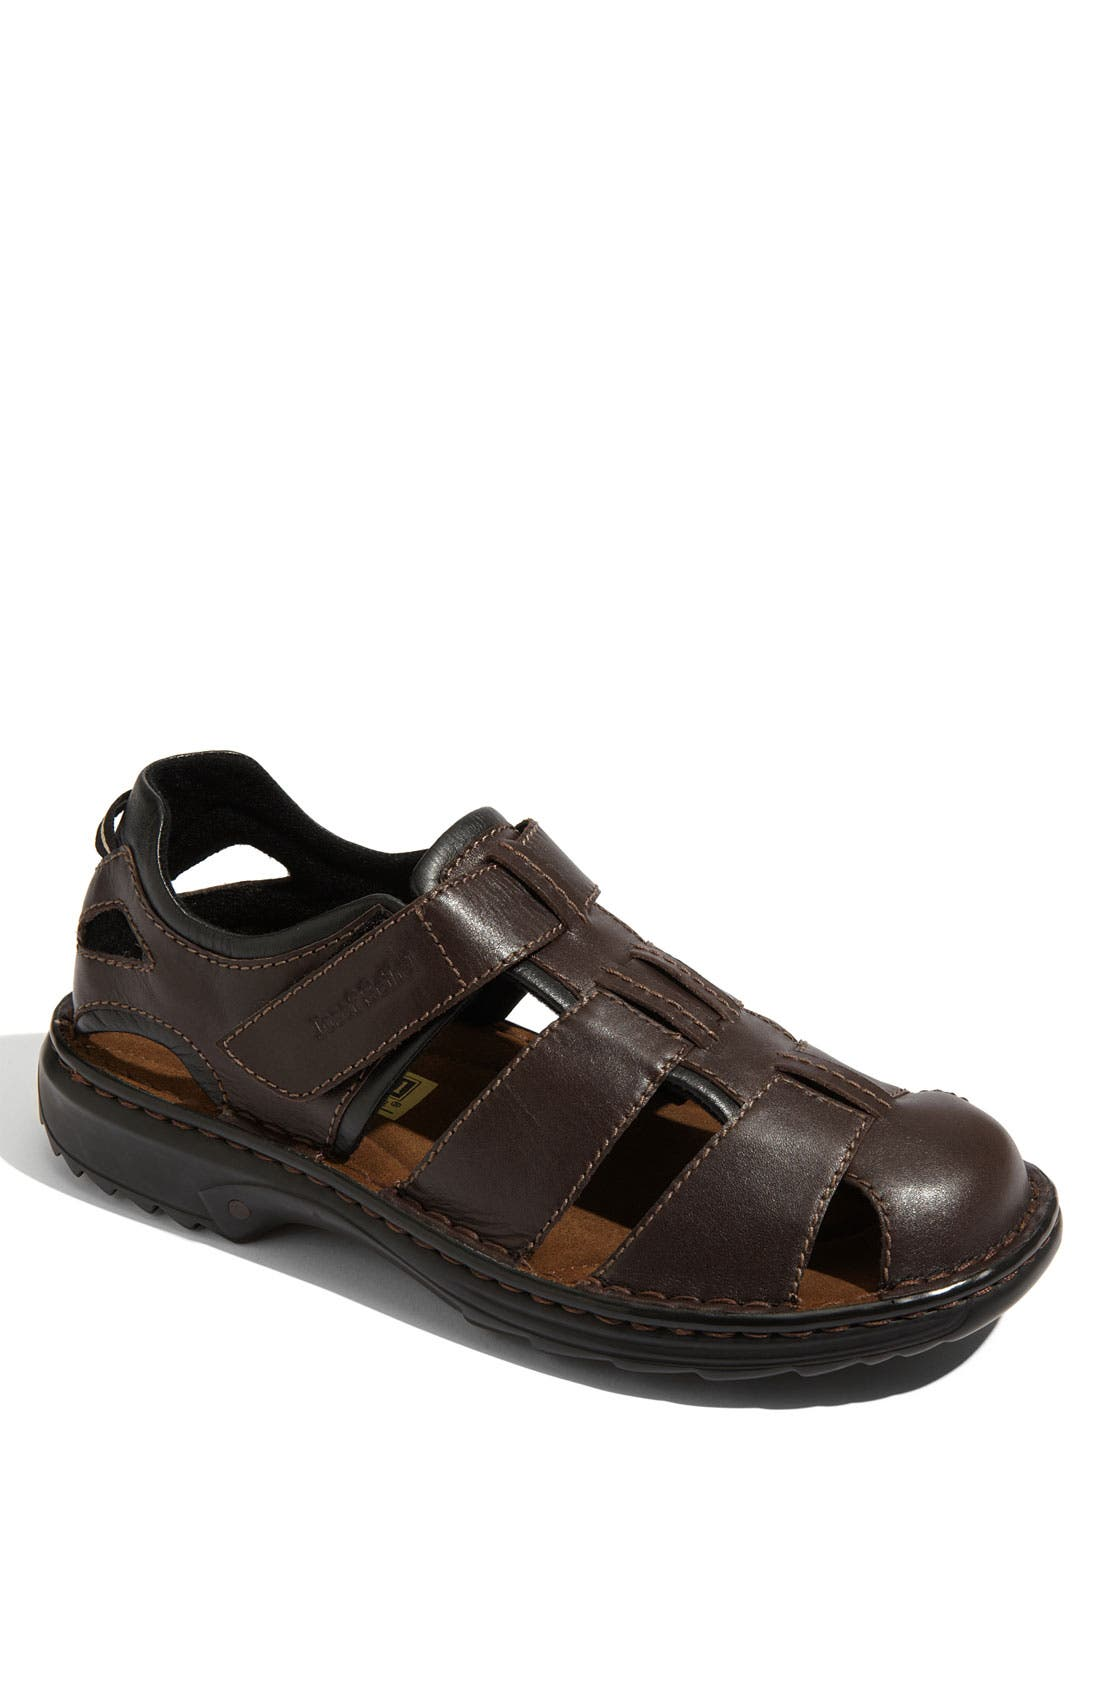 Josef Seibel 'Jeremy' Sandal (Men)